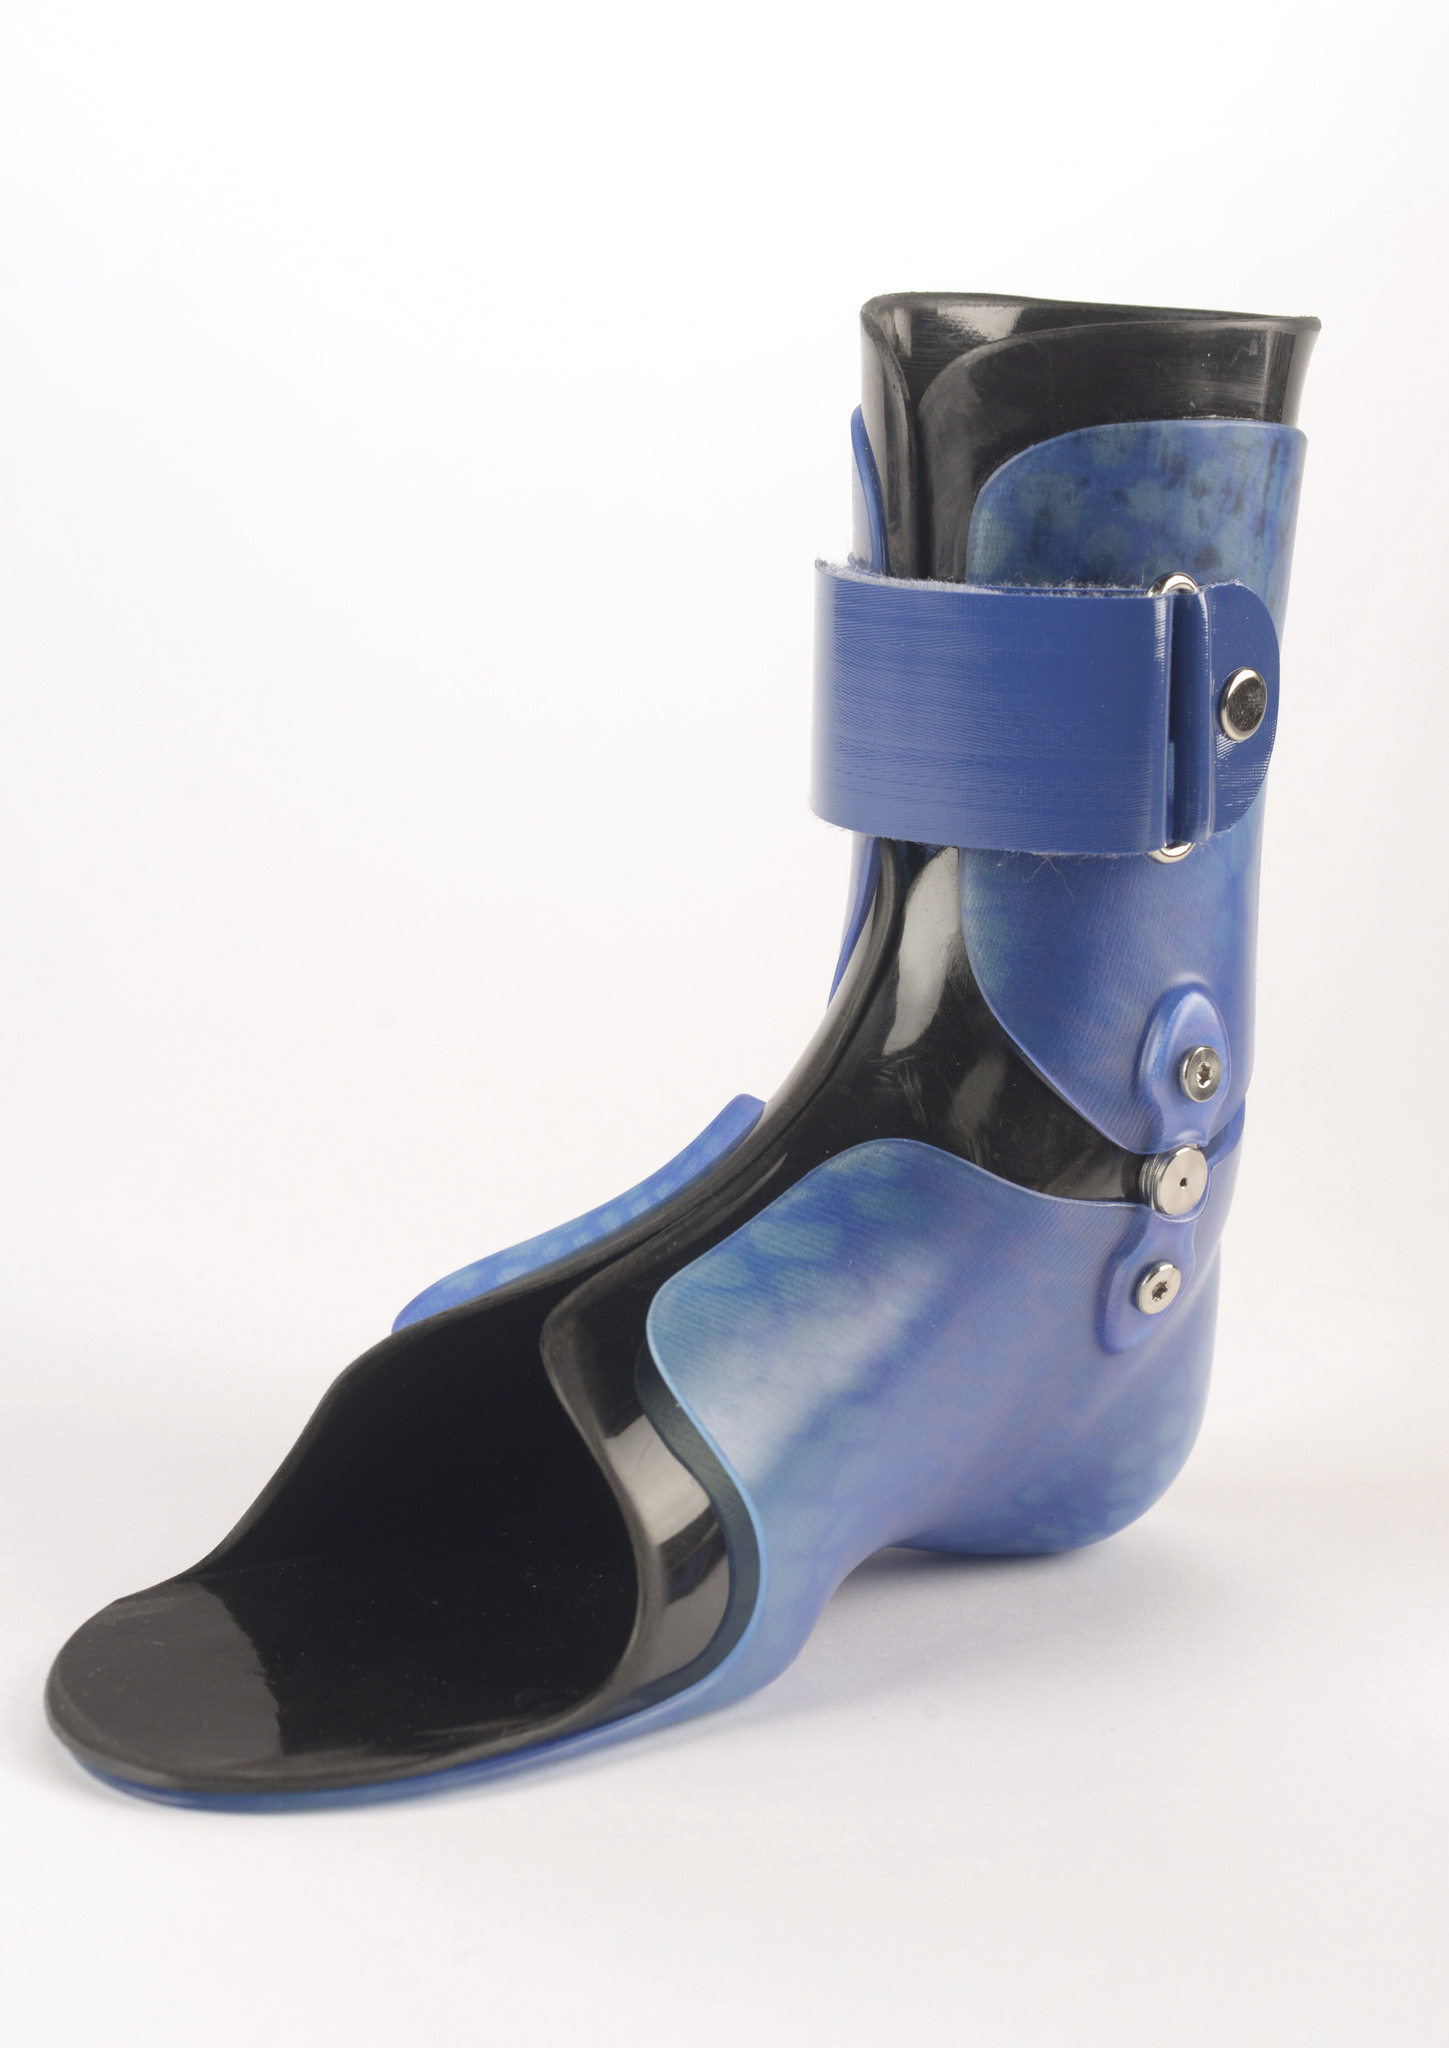 Pivot Installed on an Orthosis